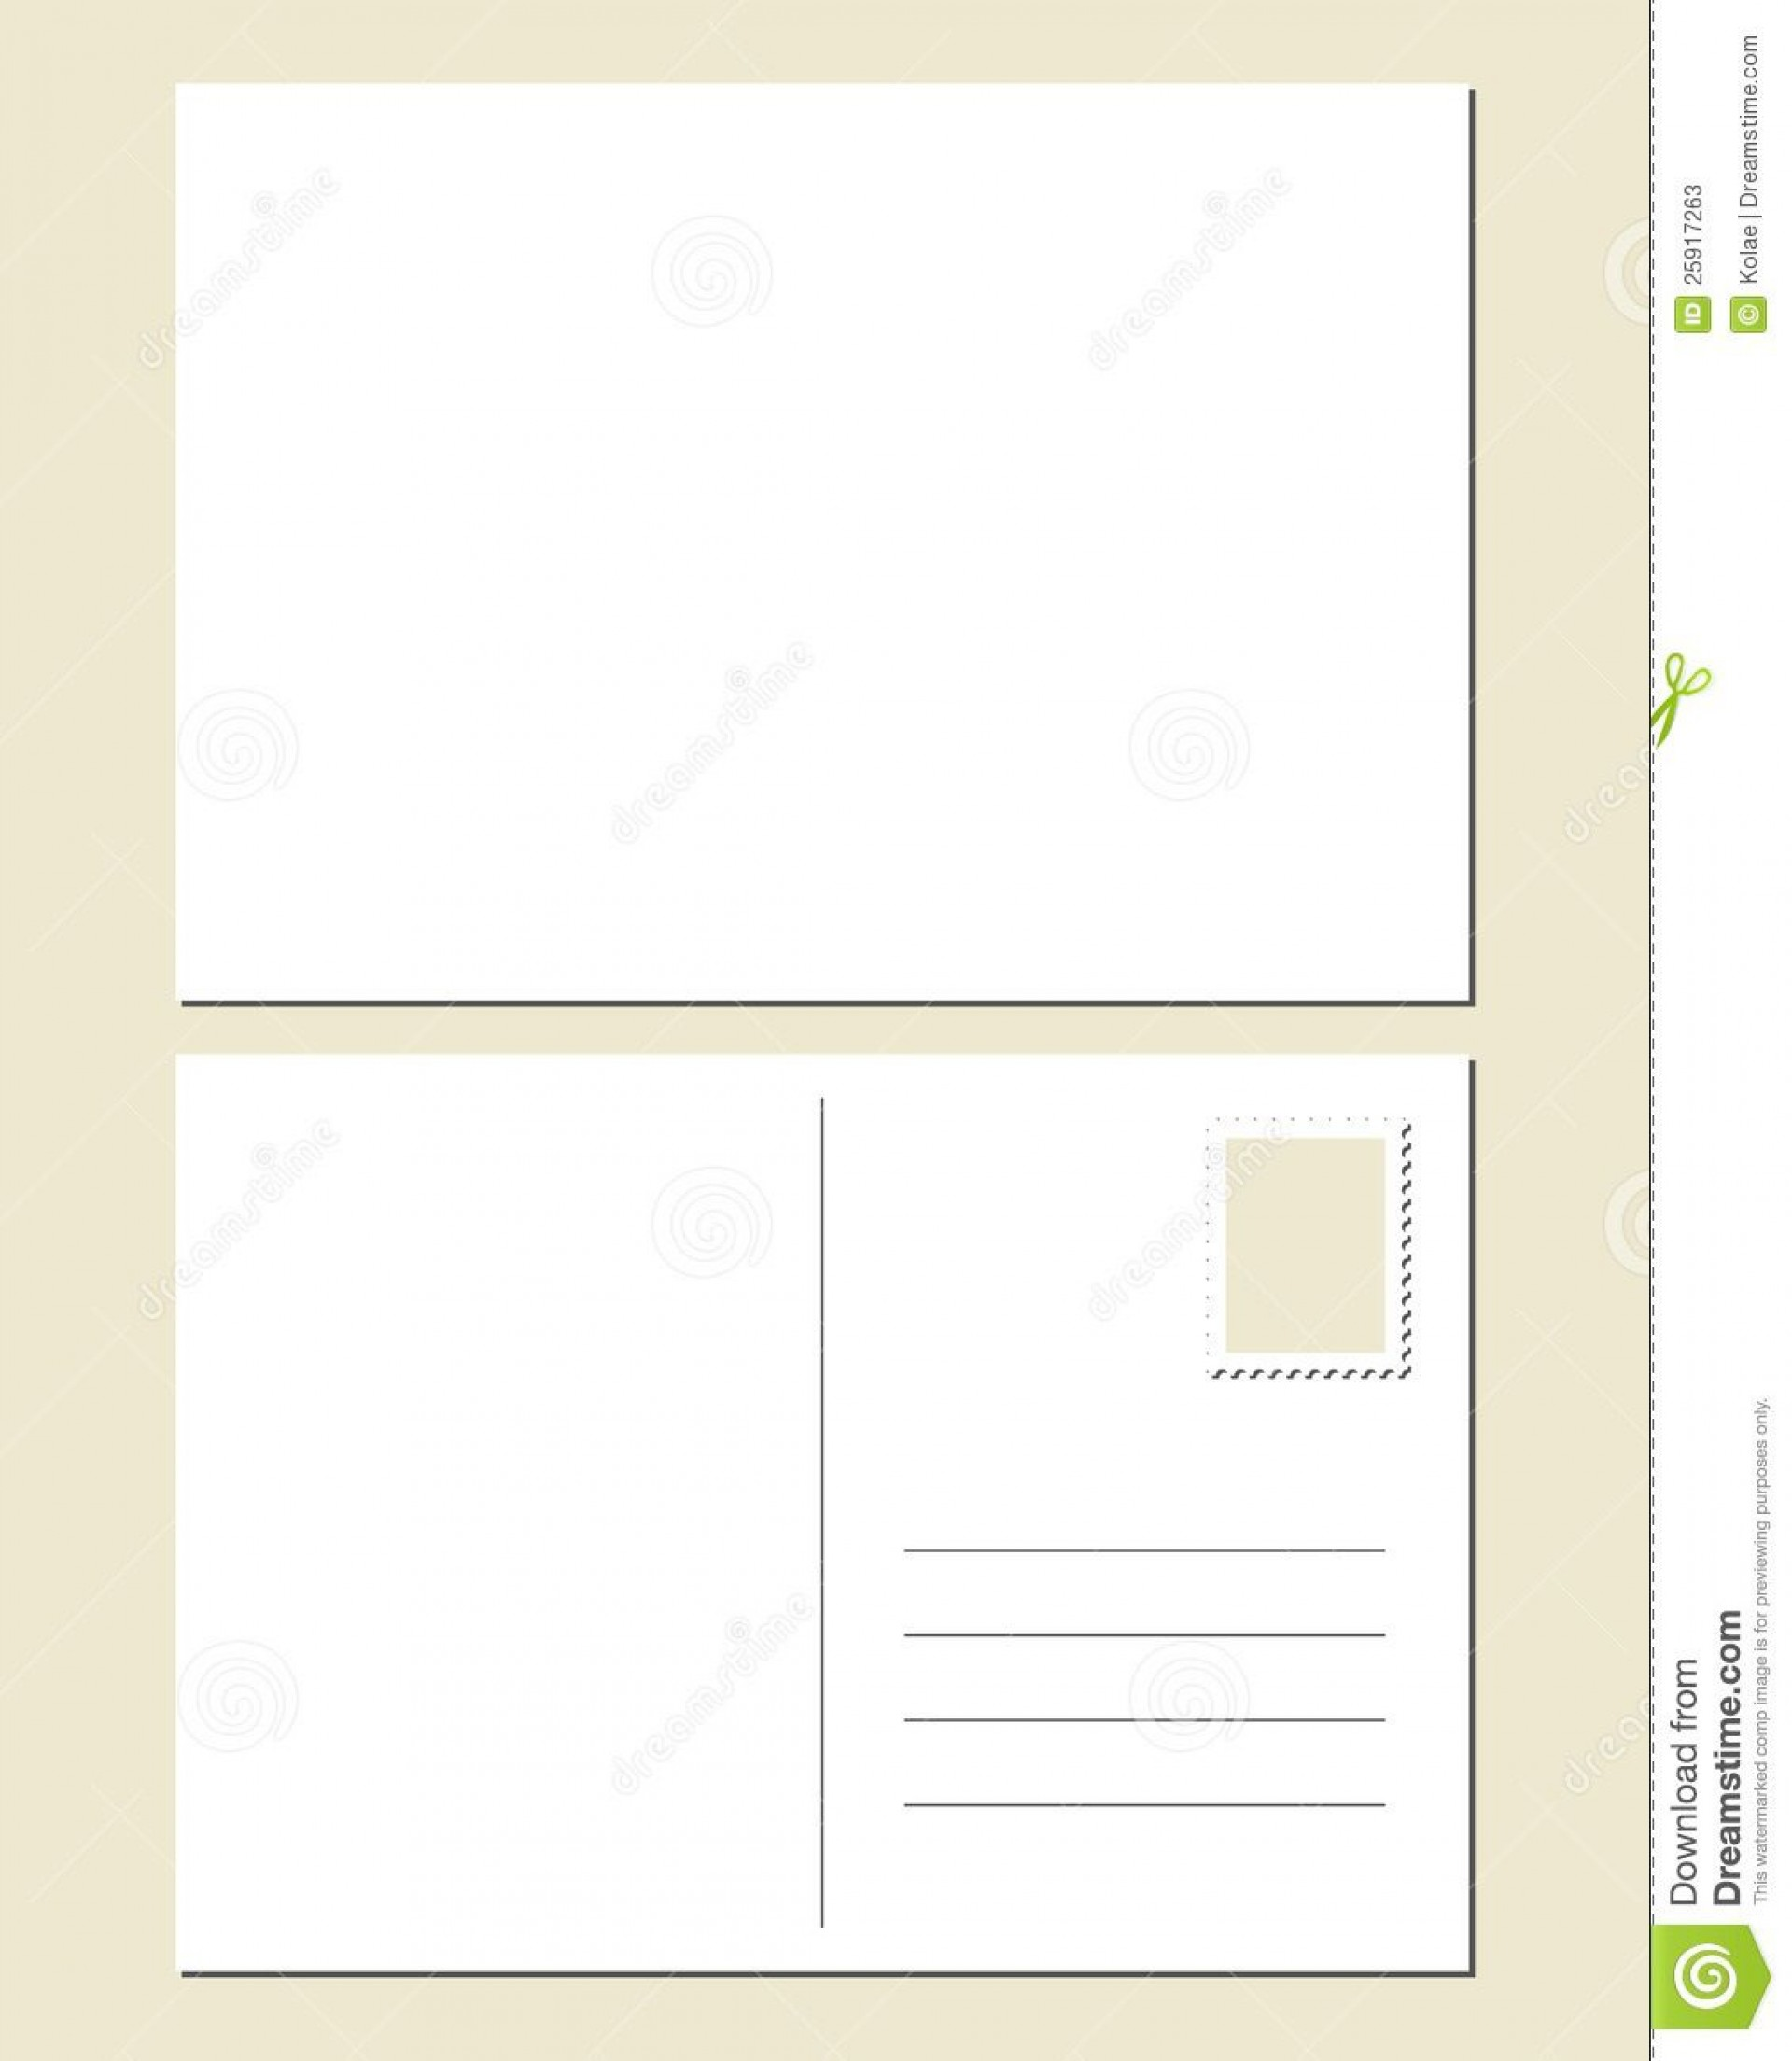 007 Breathtaking Postcard Front And Back Template Free Image  To School1920